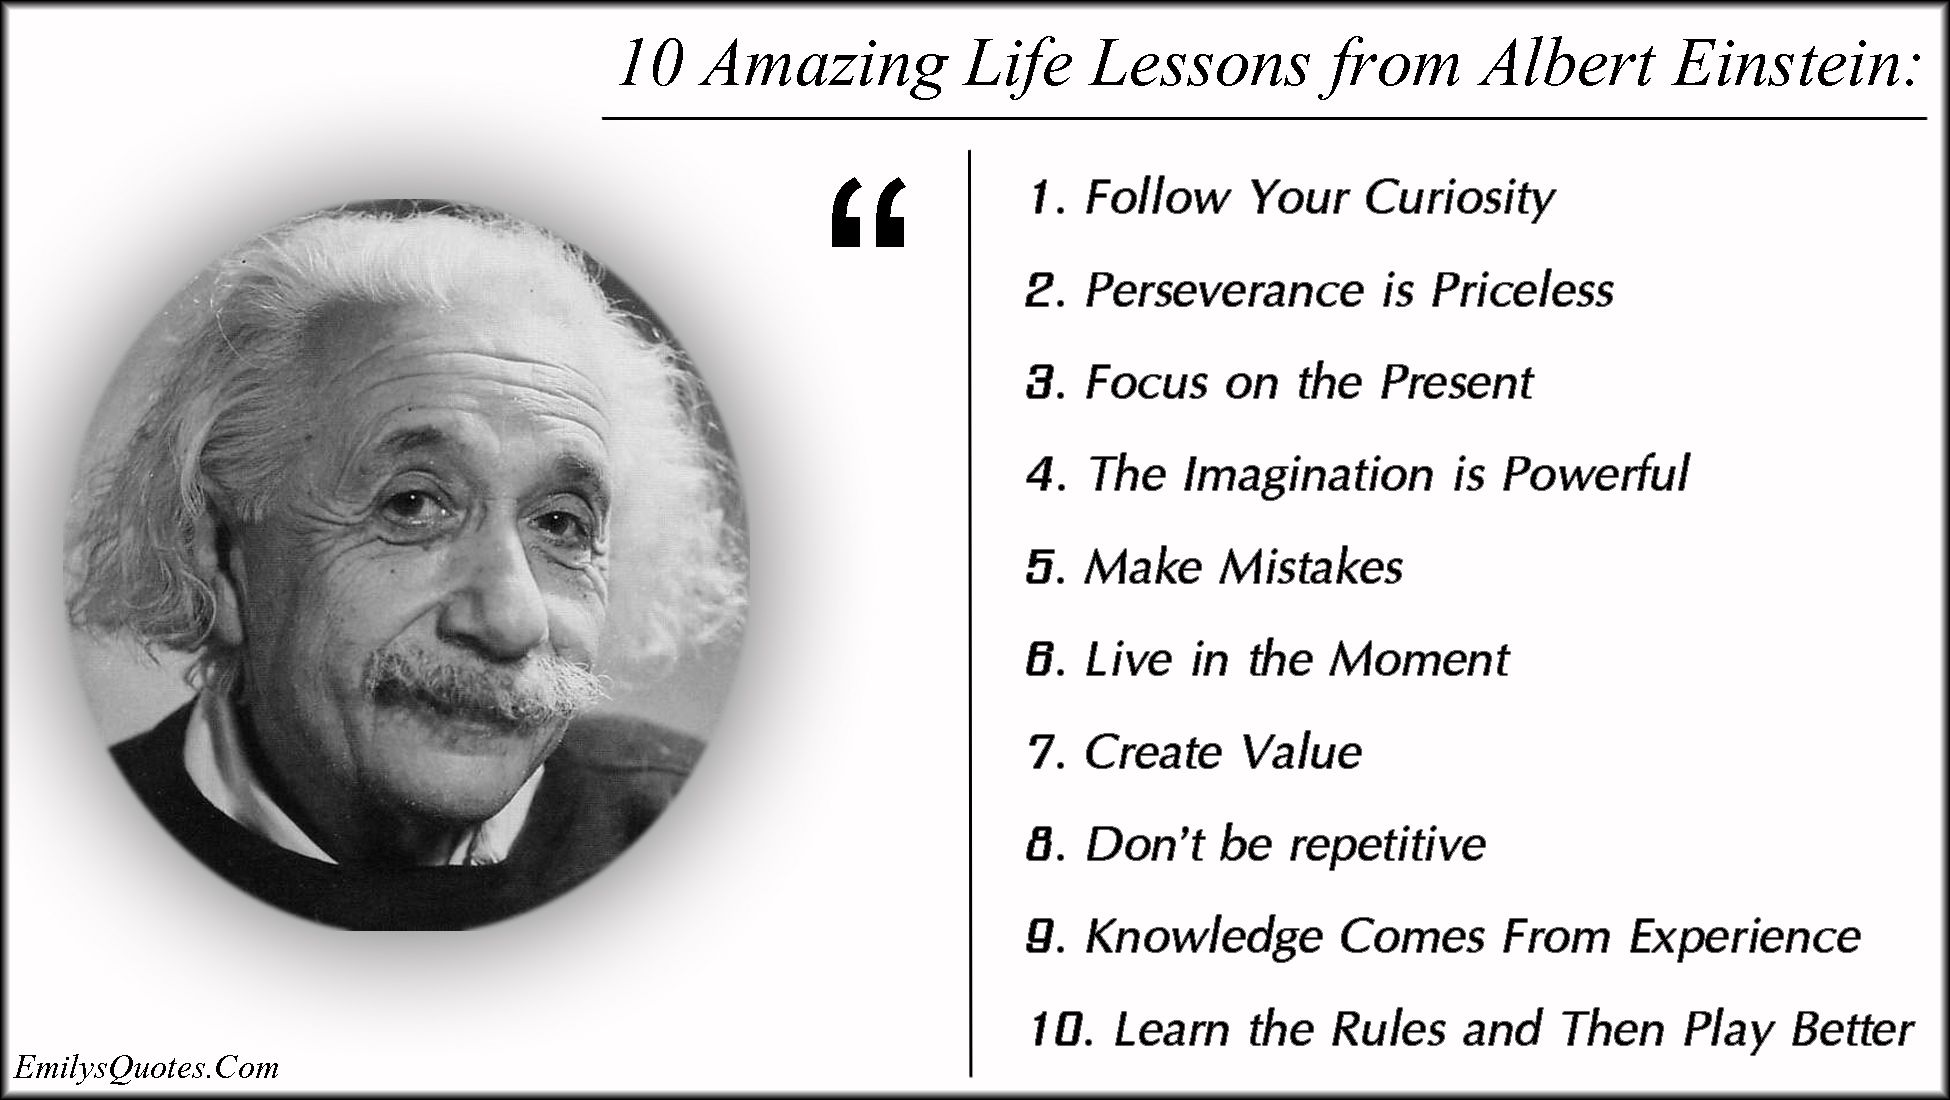 10 Amazing Life Lessons From Albert Einstein 1 Follow Your Curiosity 2 Perseverance Is Priceless 3 Focus On The Present Educacion Ingles Mensajes Educacion